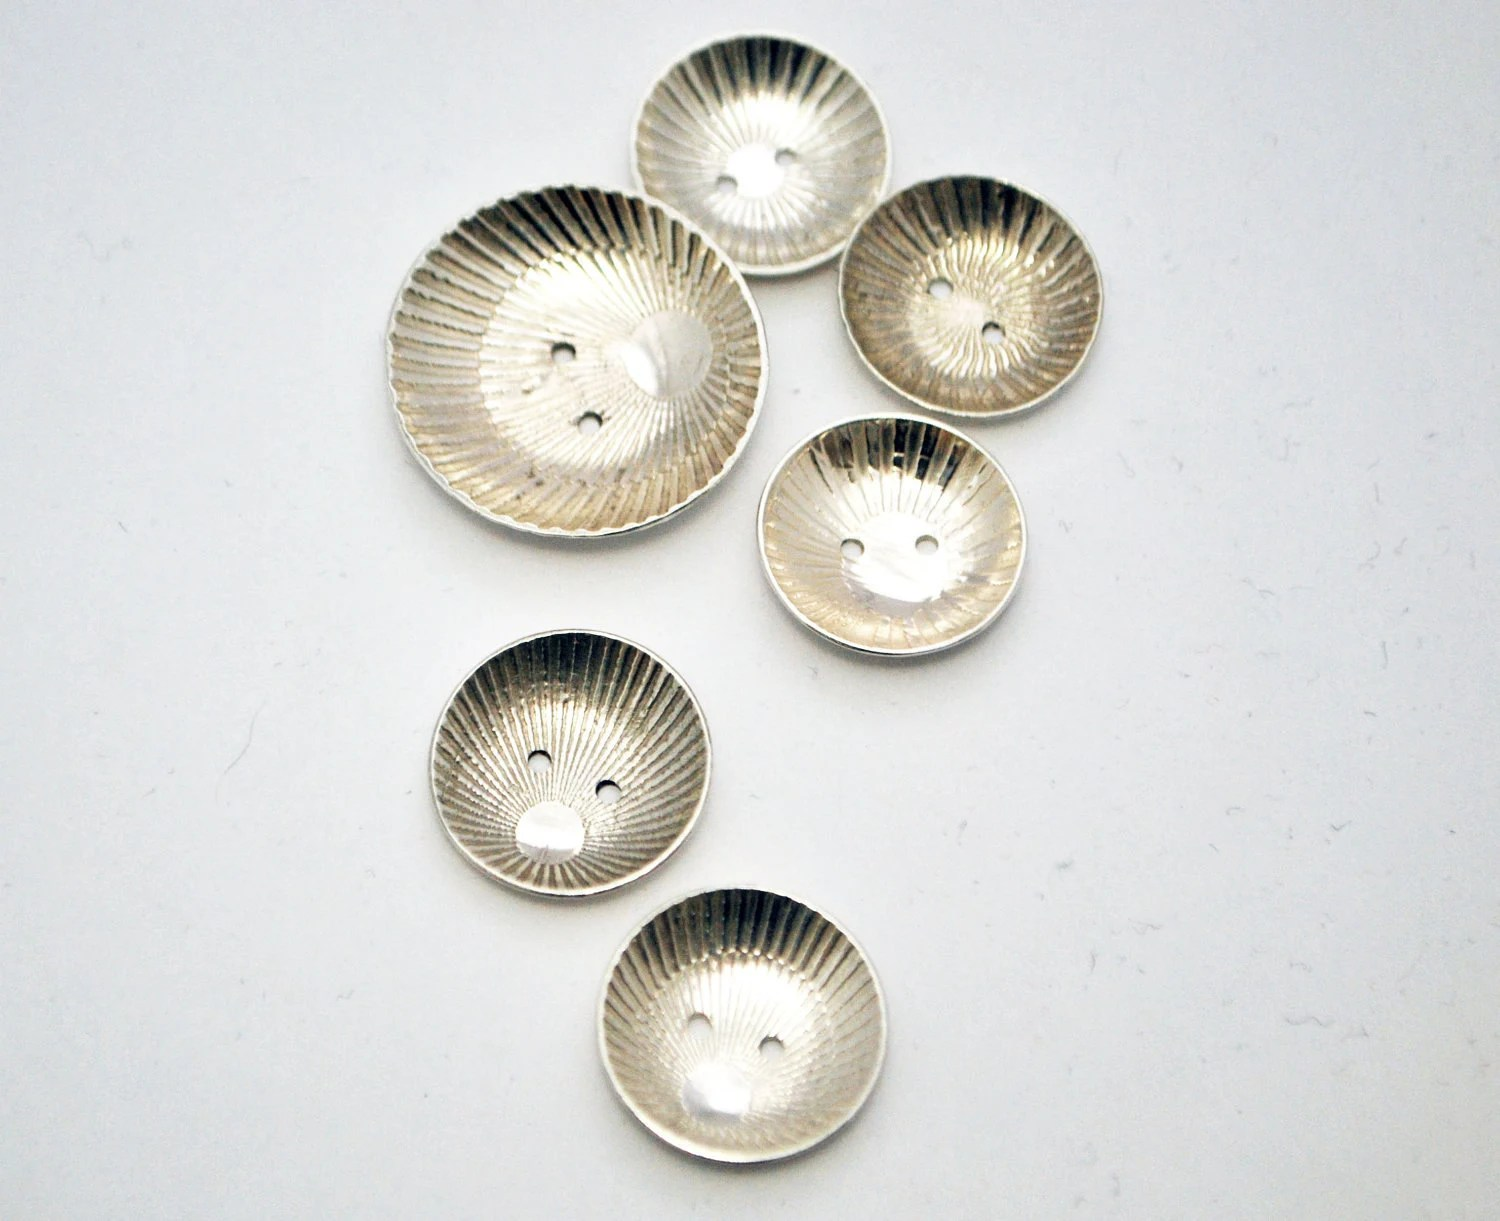 Handmade Sterling silver buttons- Japanese Illusion buttons - Large Etched silver buttons - x6 - McDaddio